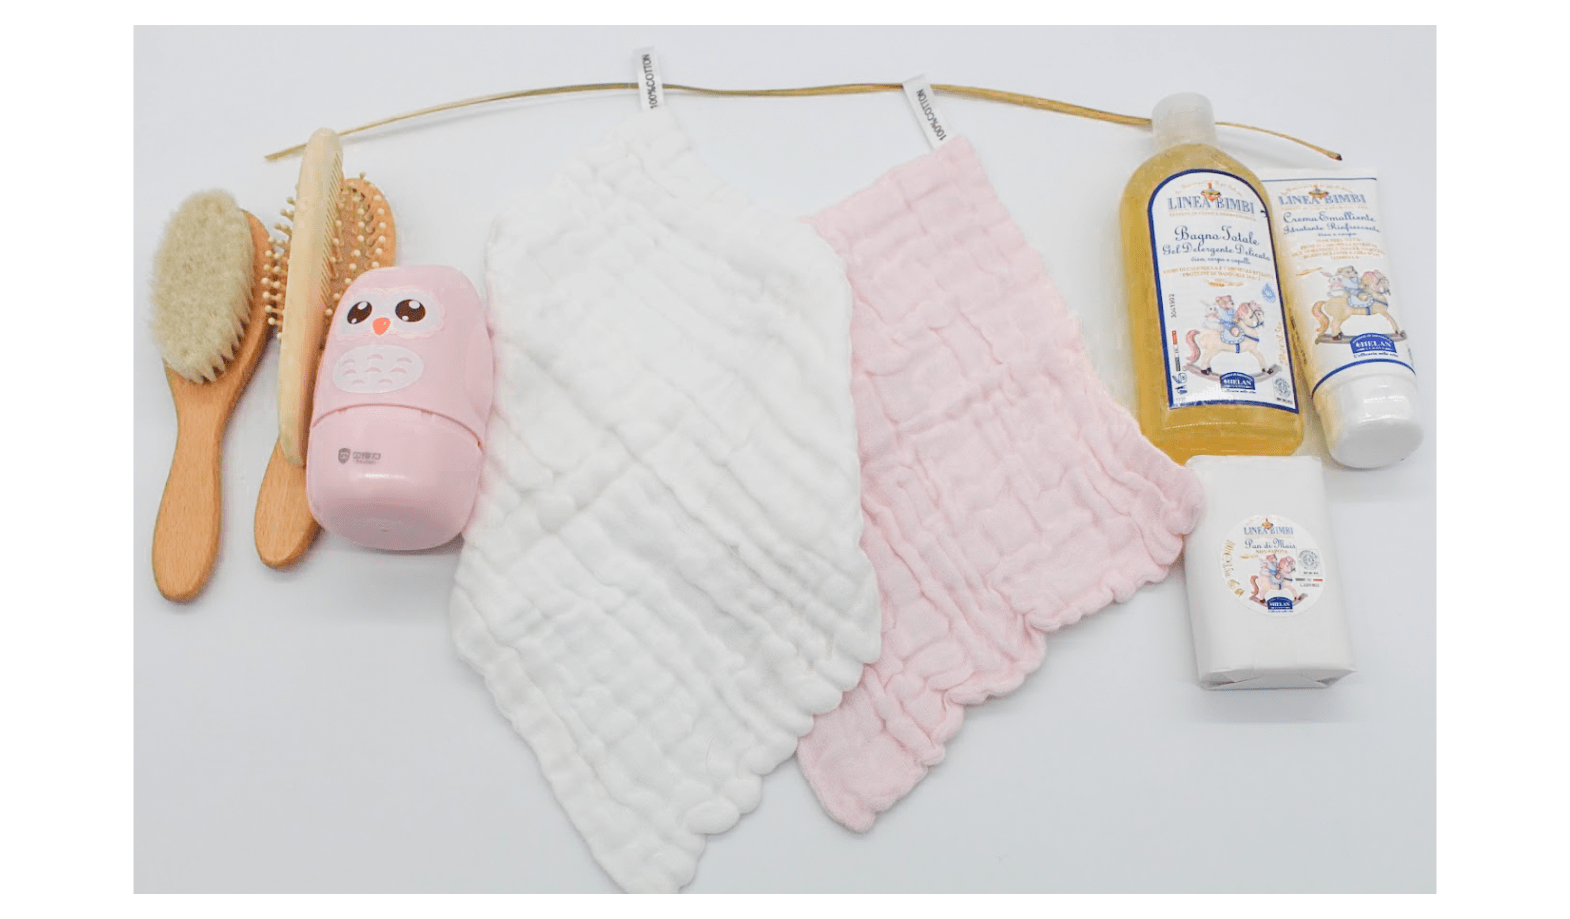 Baby Girl Gift Package  |  Infant and Newborn Girl Gifts 2020 - Benzie Gifts